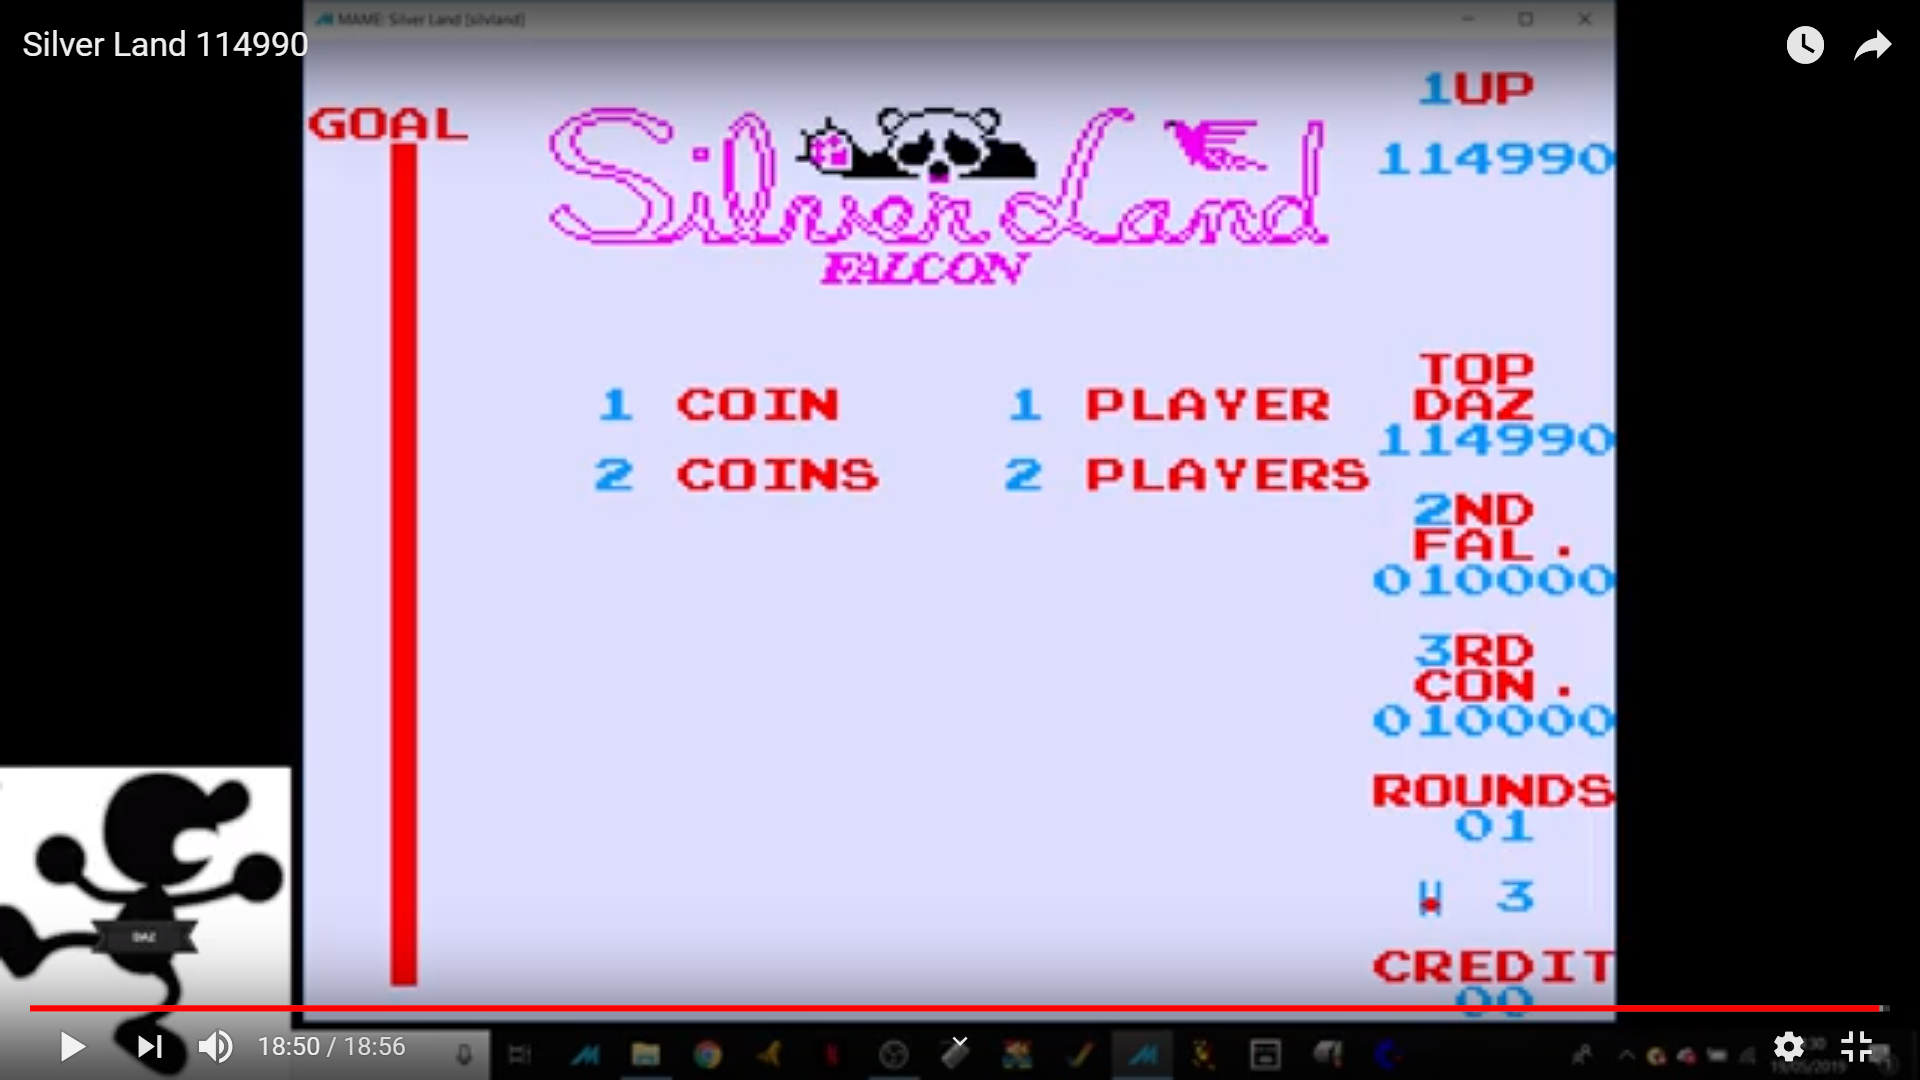 Ivanstorm1973: Silver Land [silvland] (Arcade Emulated / M.A.M.E.) 114,990 points on 2019-05-19 09:13:13